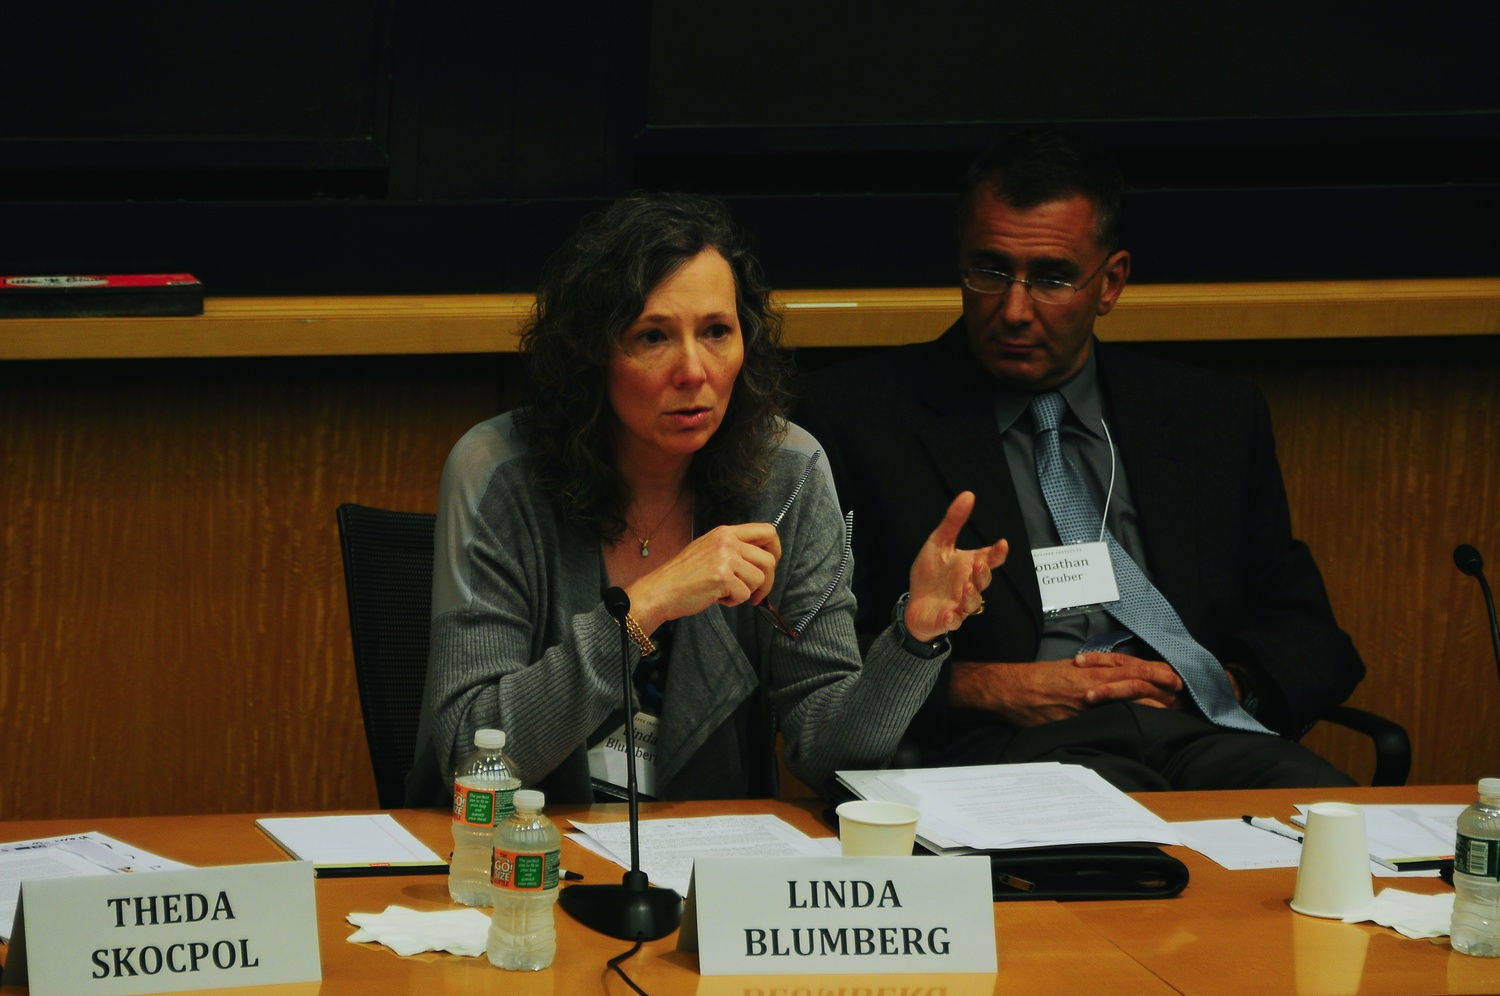 """Linda J. Blumberg, a speaker at a panel """"Taking Stock of Health Reform,"""" in CGIS South Thursday afternoon, discusses Obamacare."""